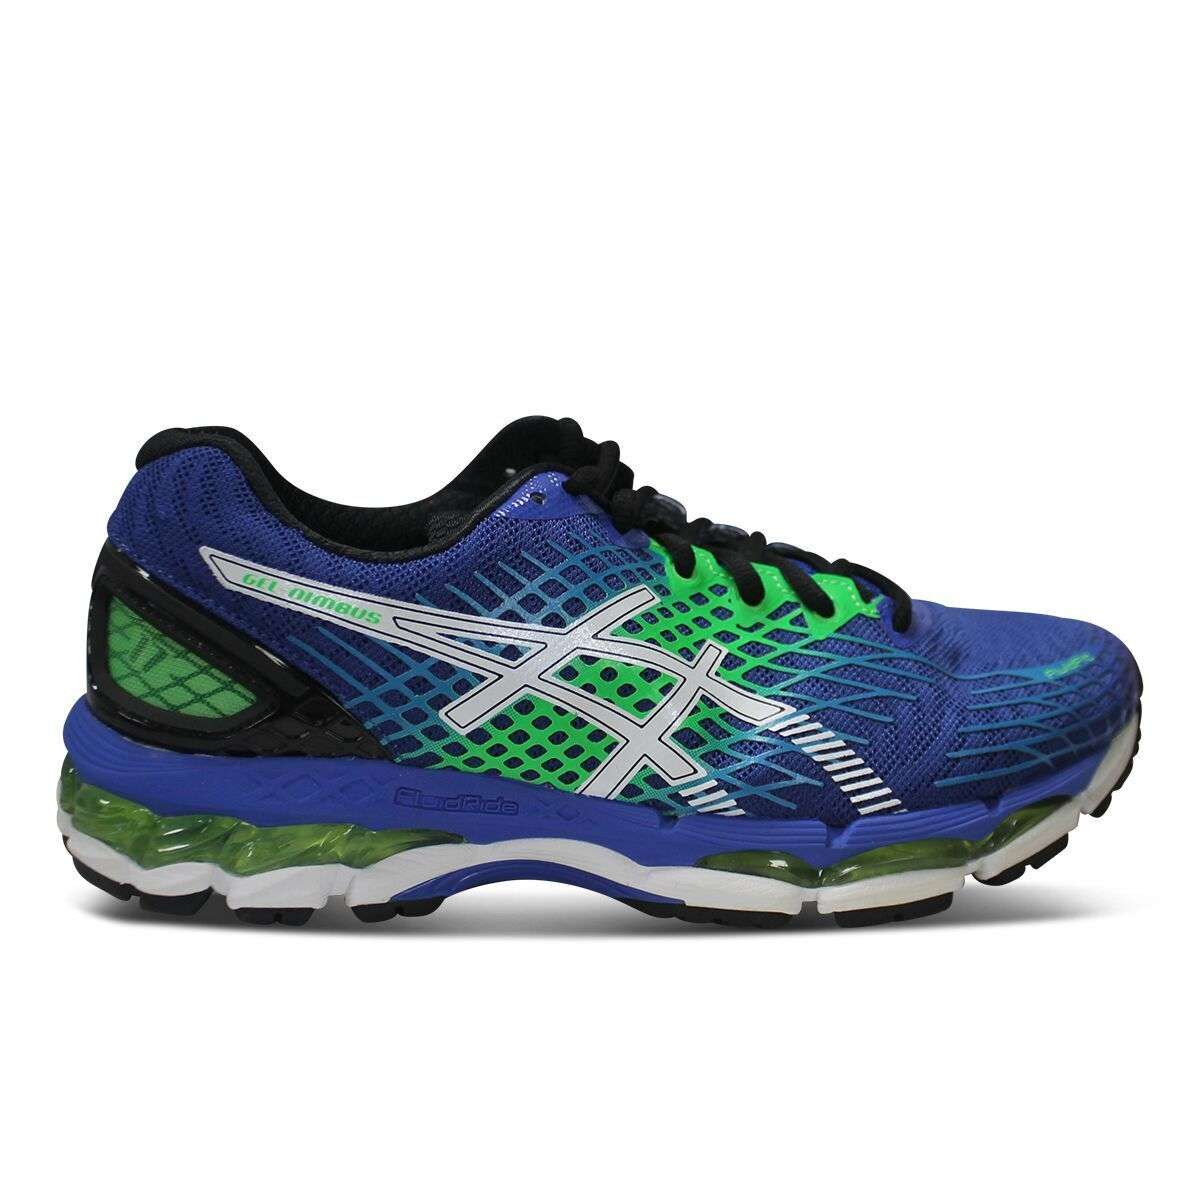 Asics Gel-Nimbus 17 Men's Running Shoe